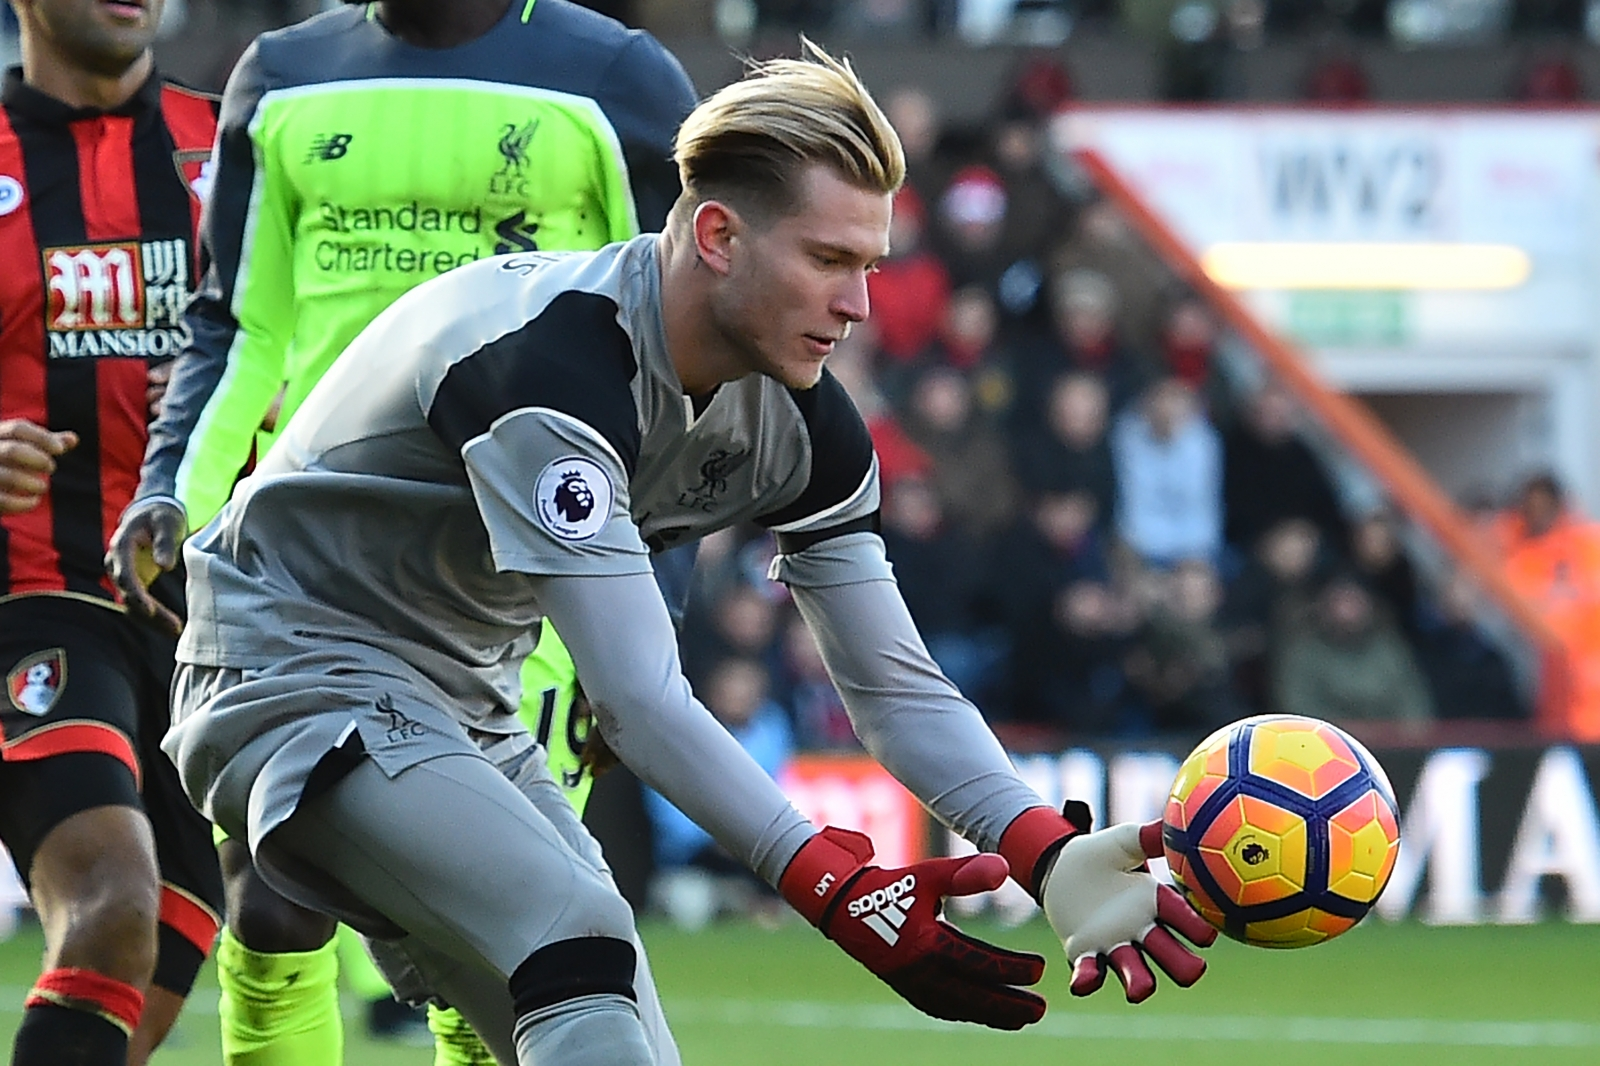 Liverpool concedes 3 late goals, loses 4-3 to Bournemouth